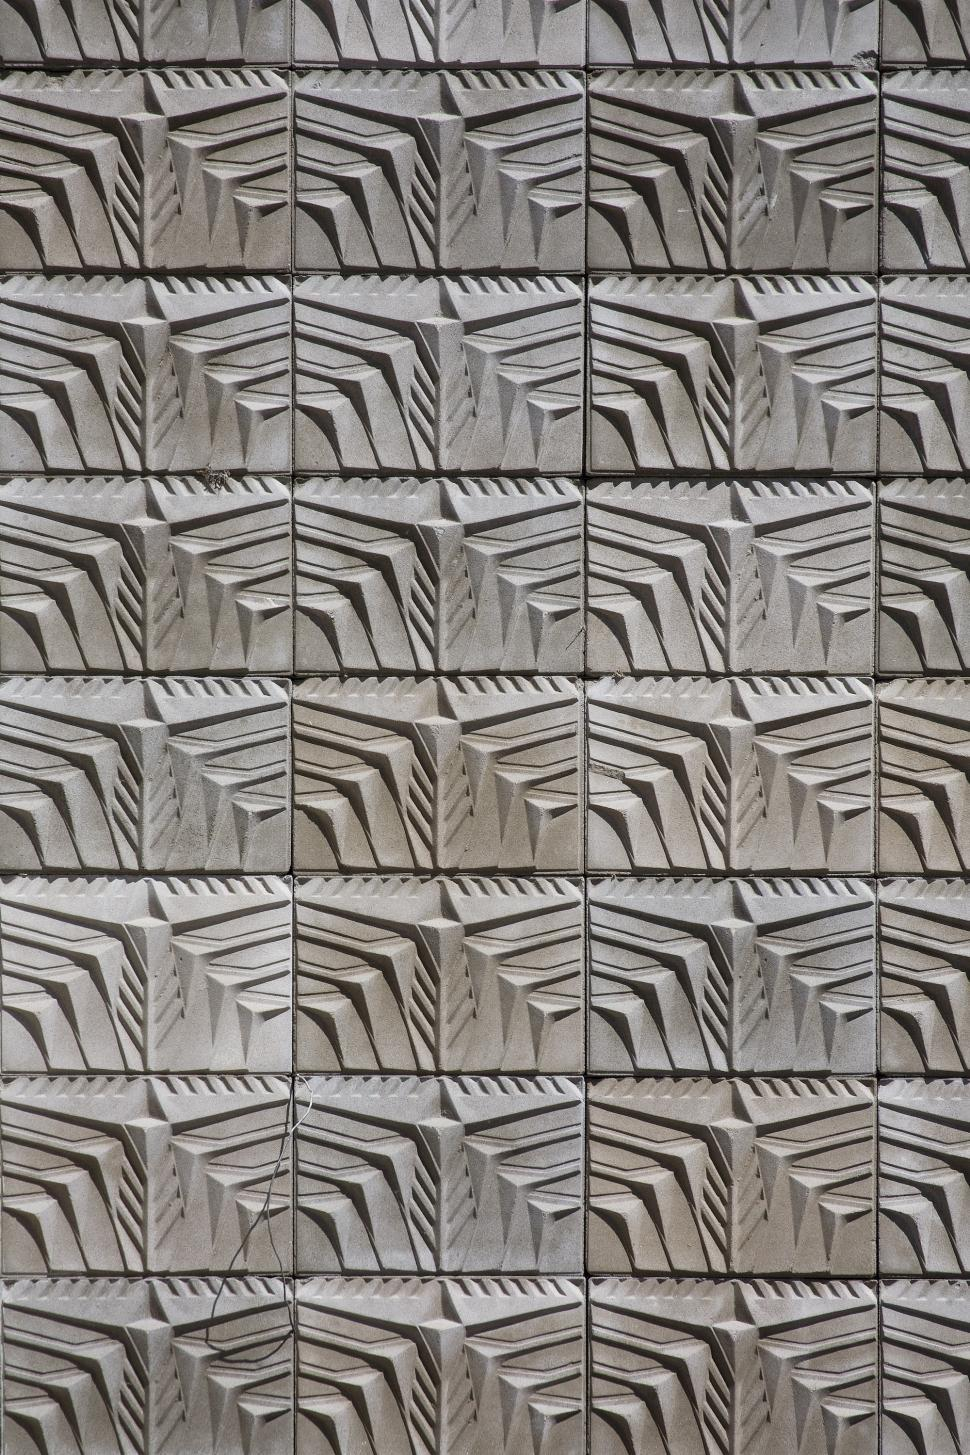 Download Free Stock Photo of cast concrete pattern